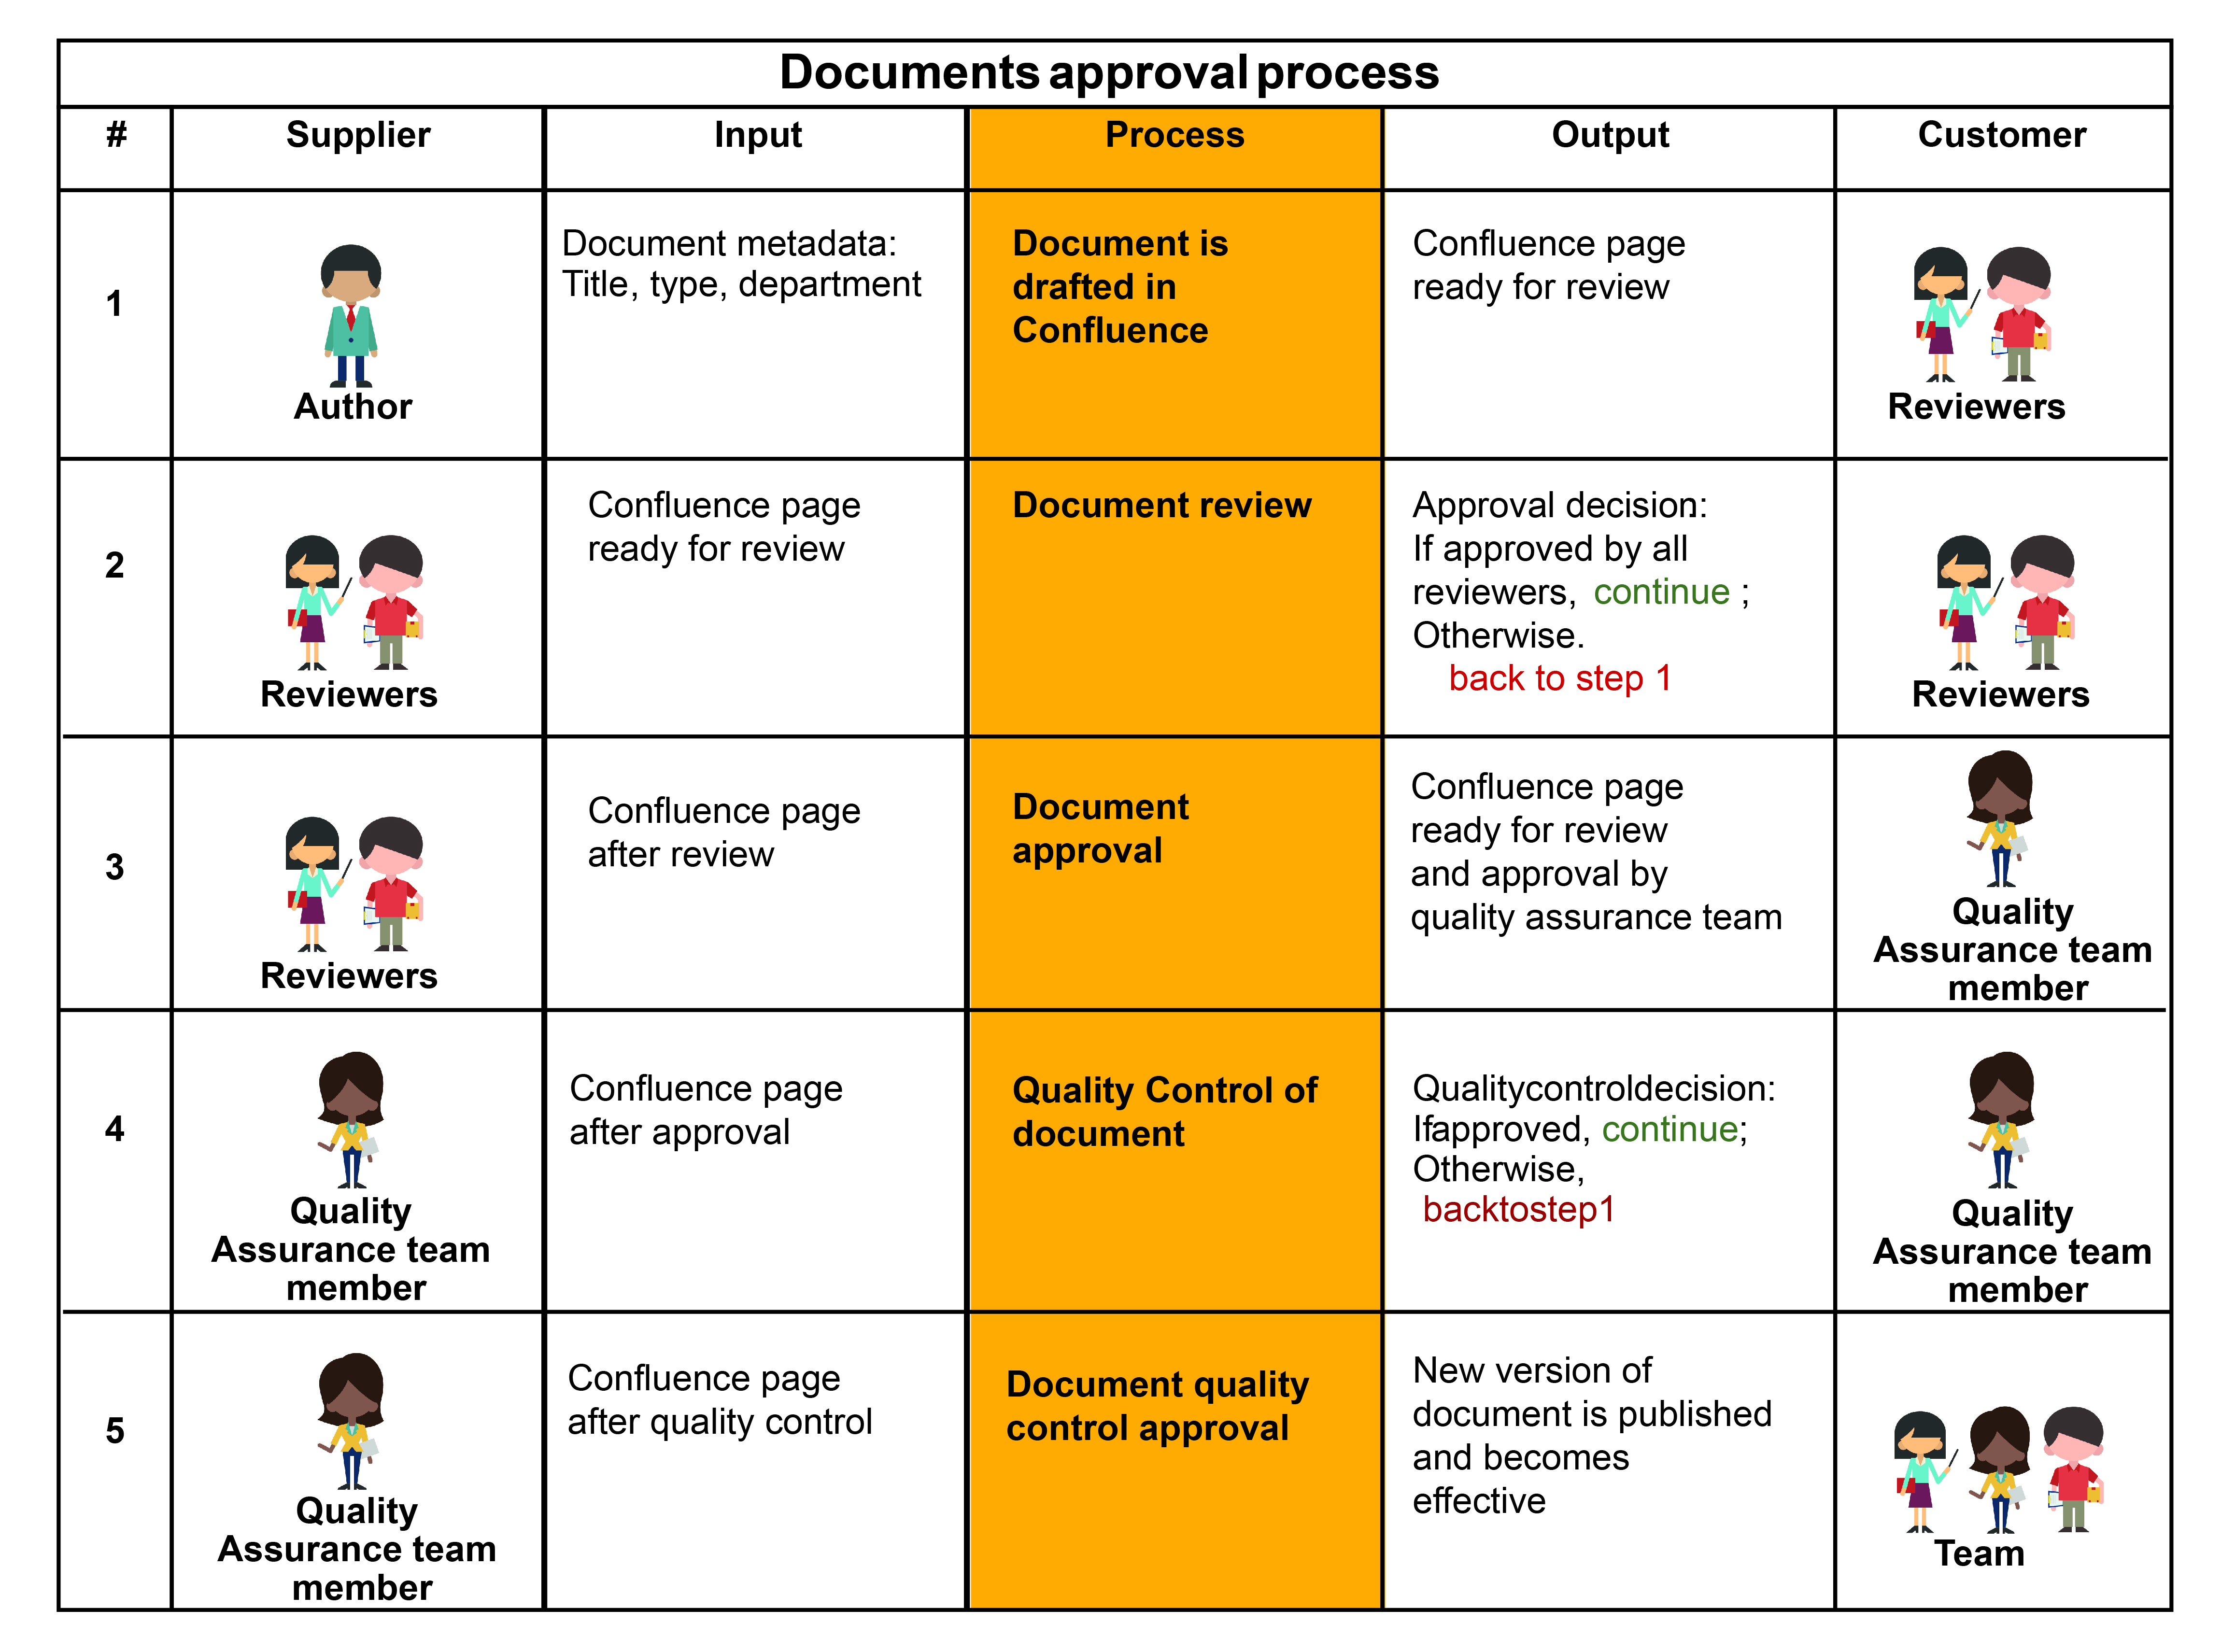 Process mapping example: review and approval of documents in Confluence